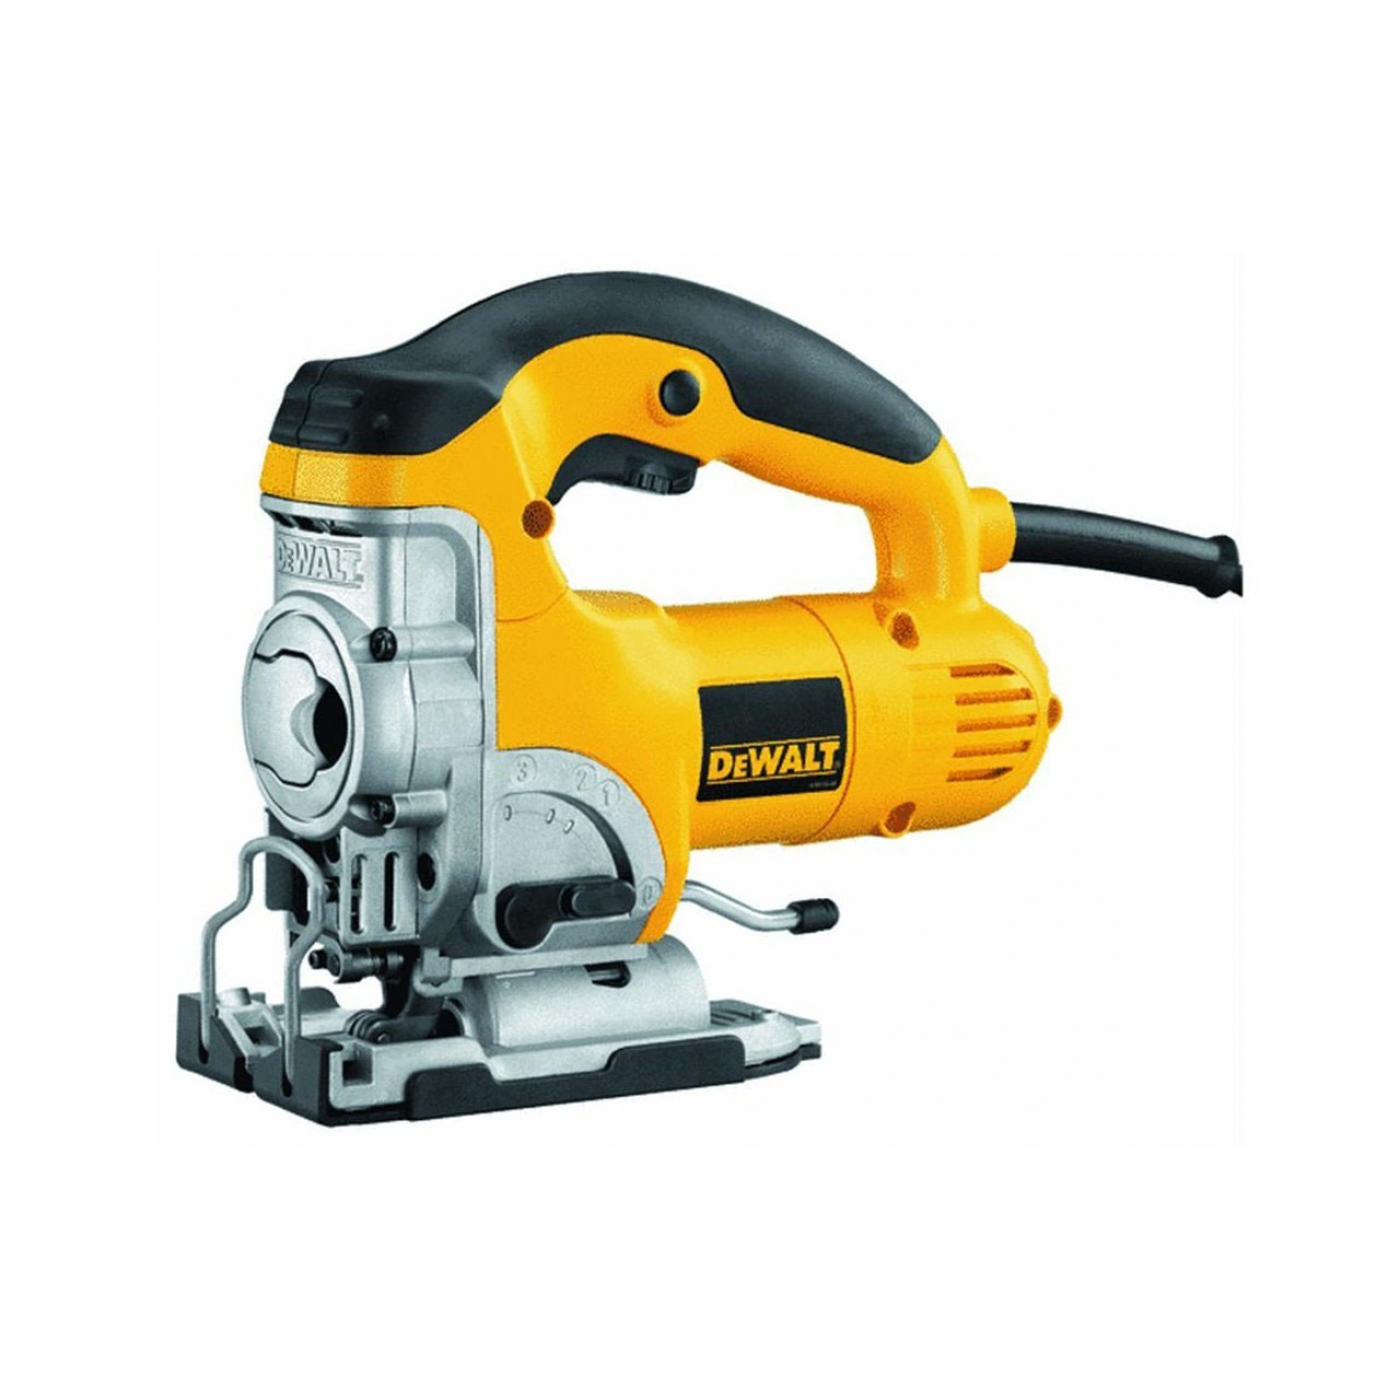 DEWALT DW349 HIGH PERFORMANCE JIGSAW 550W 220V